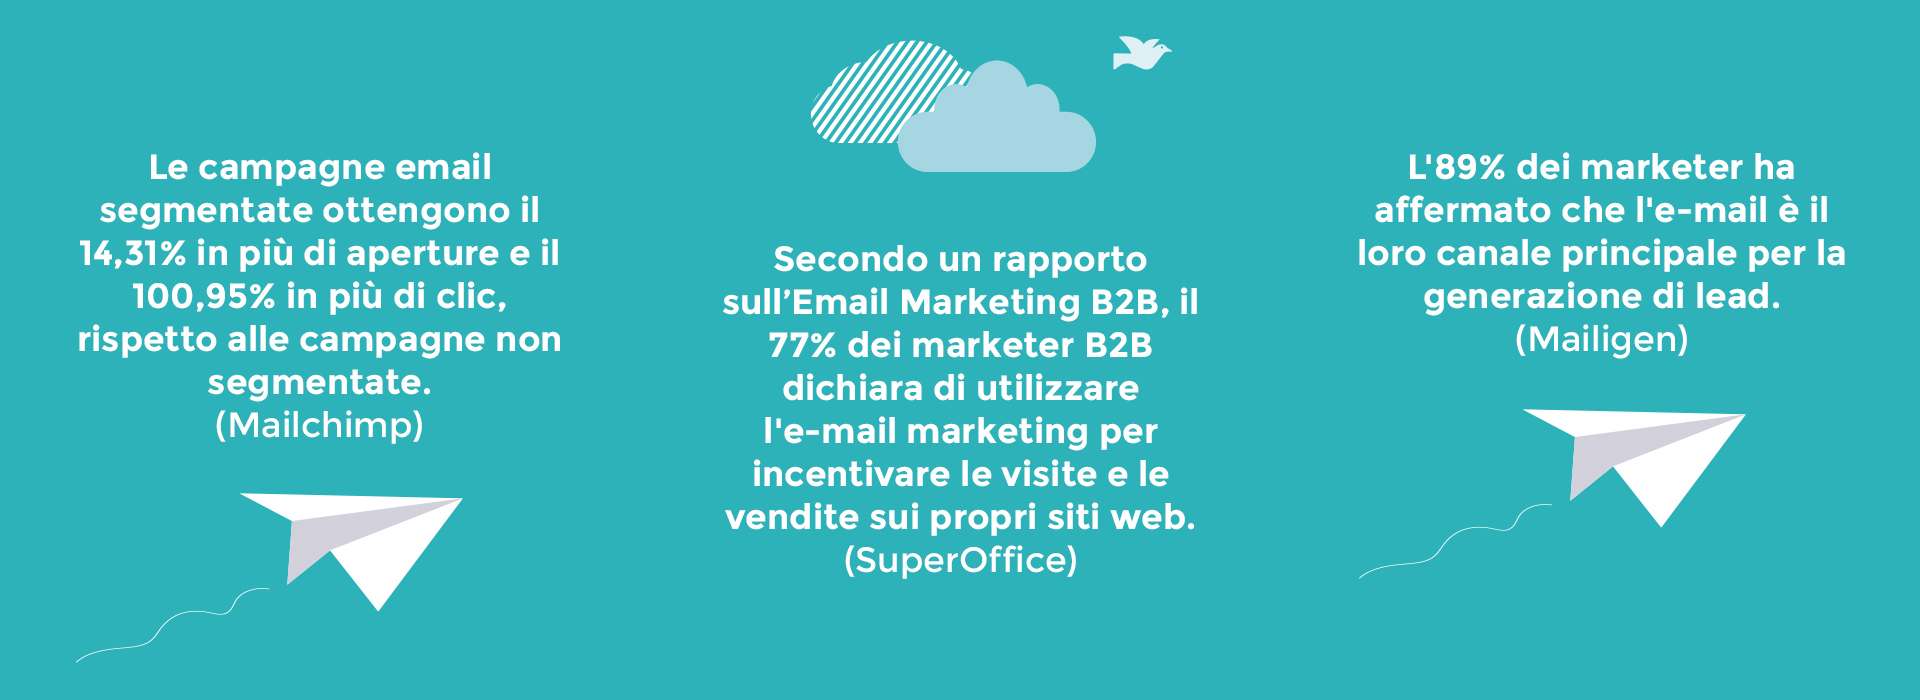 infografica_marketing_automation